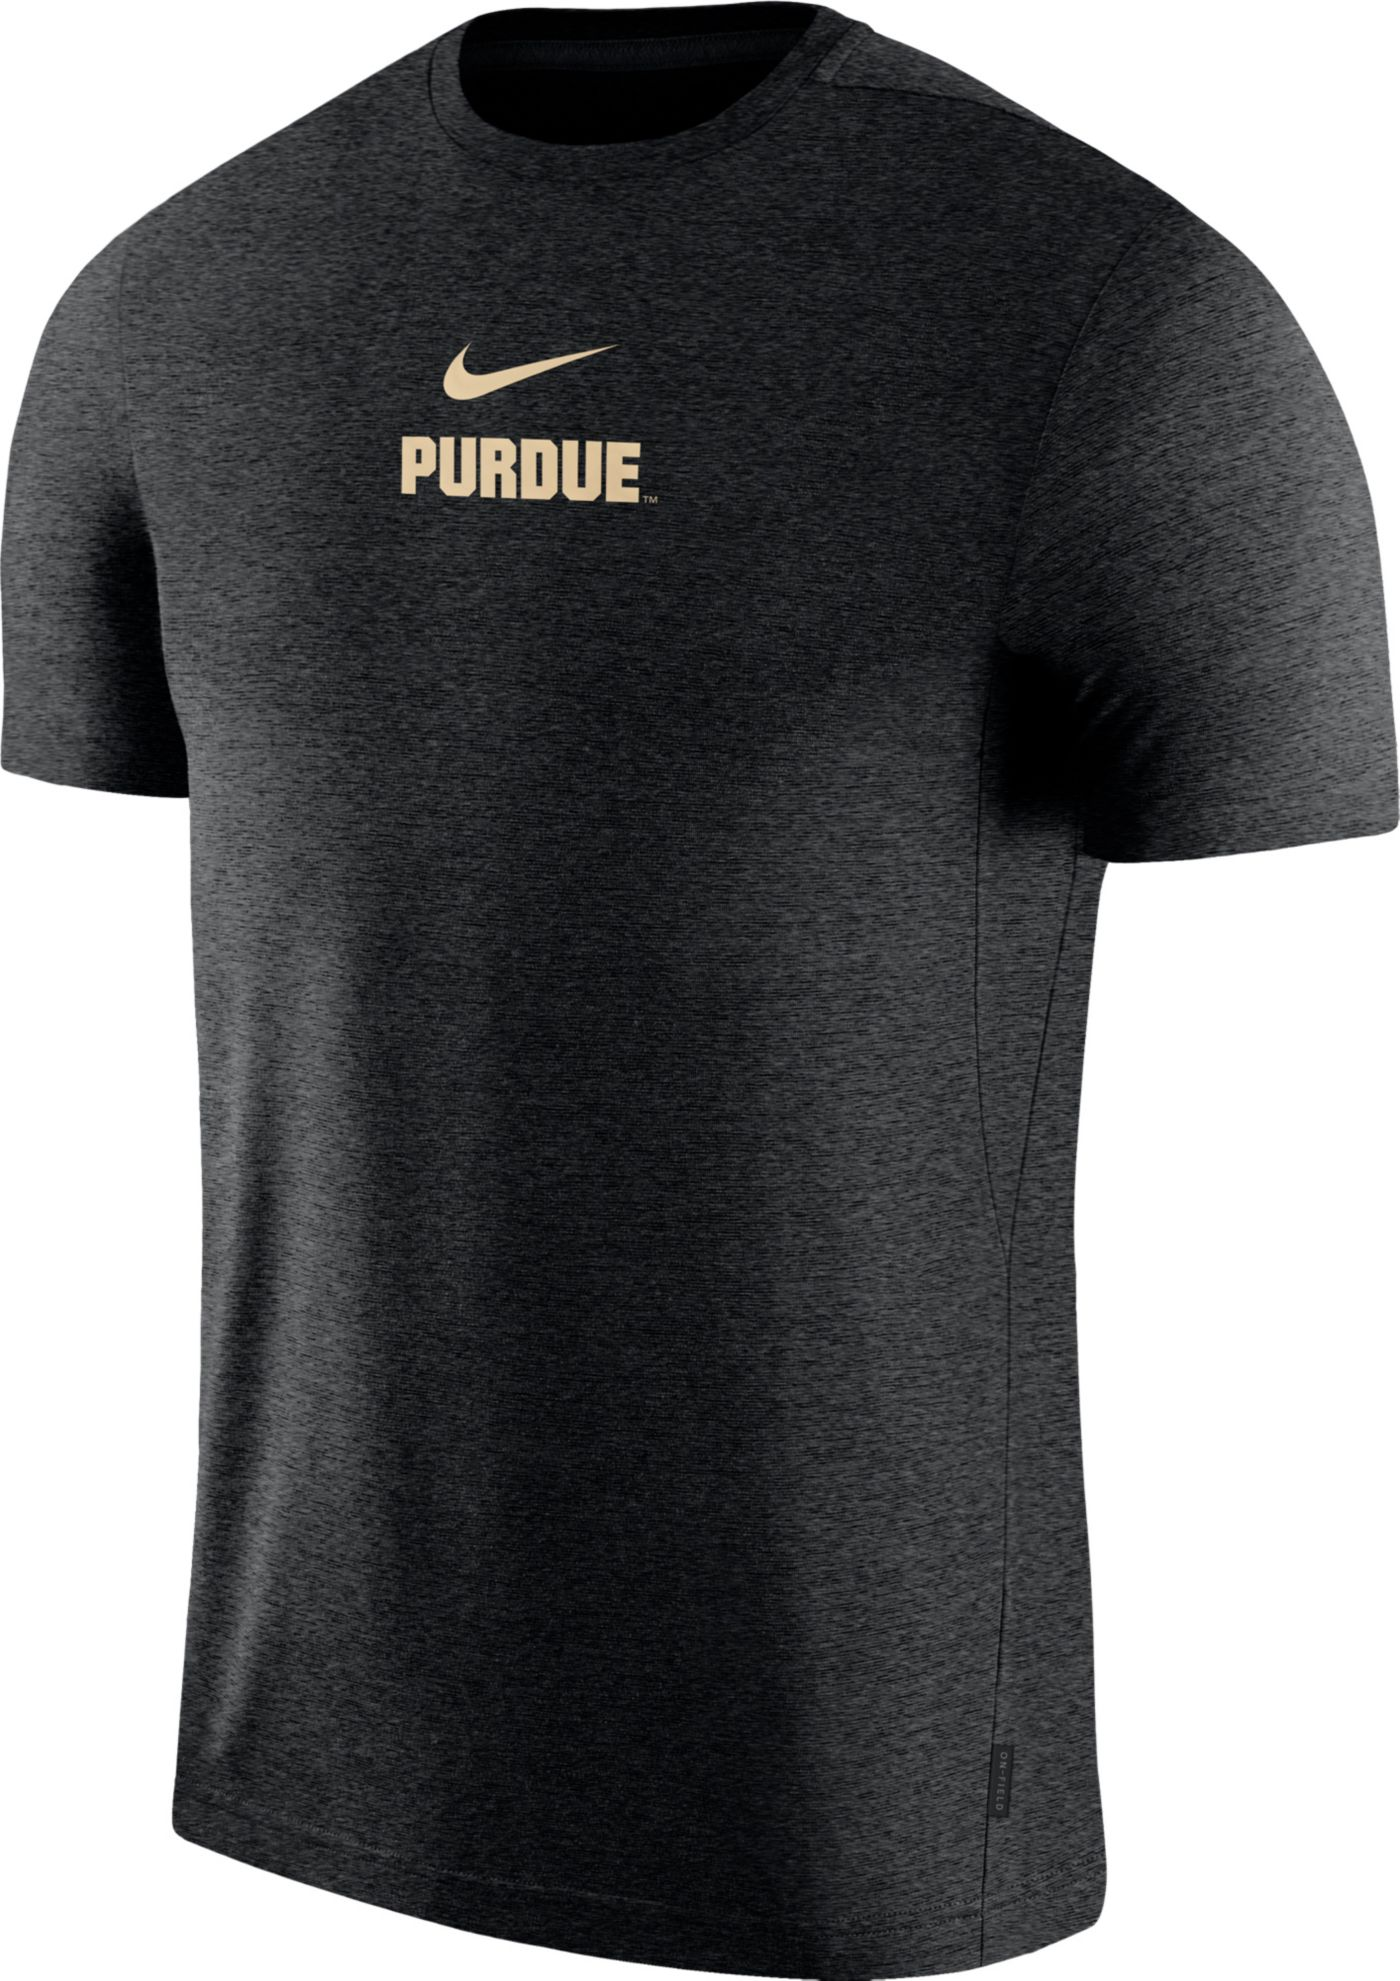 Nike Men's Purdue Boilermakers Dri-FIT Coach UV Football Black T-Shirt